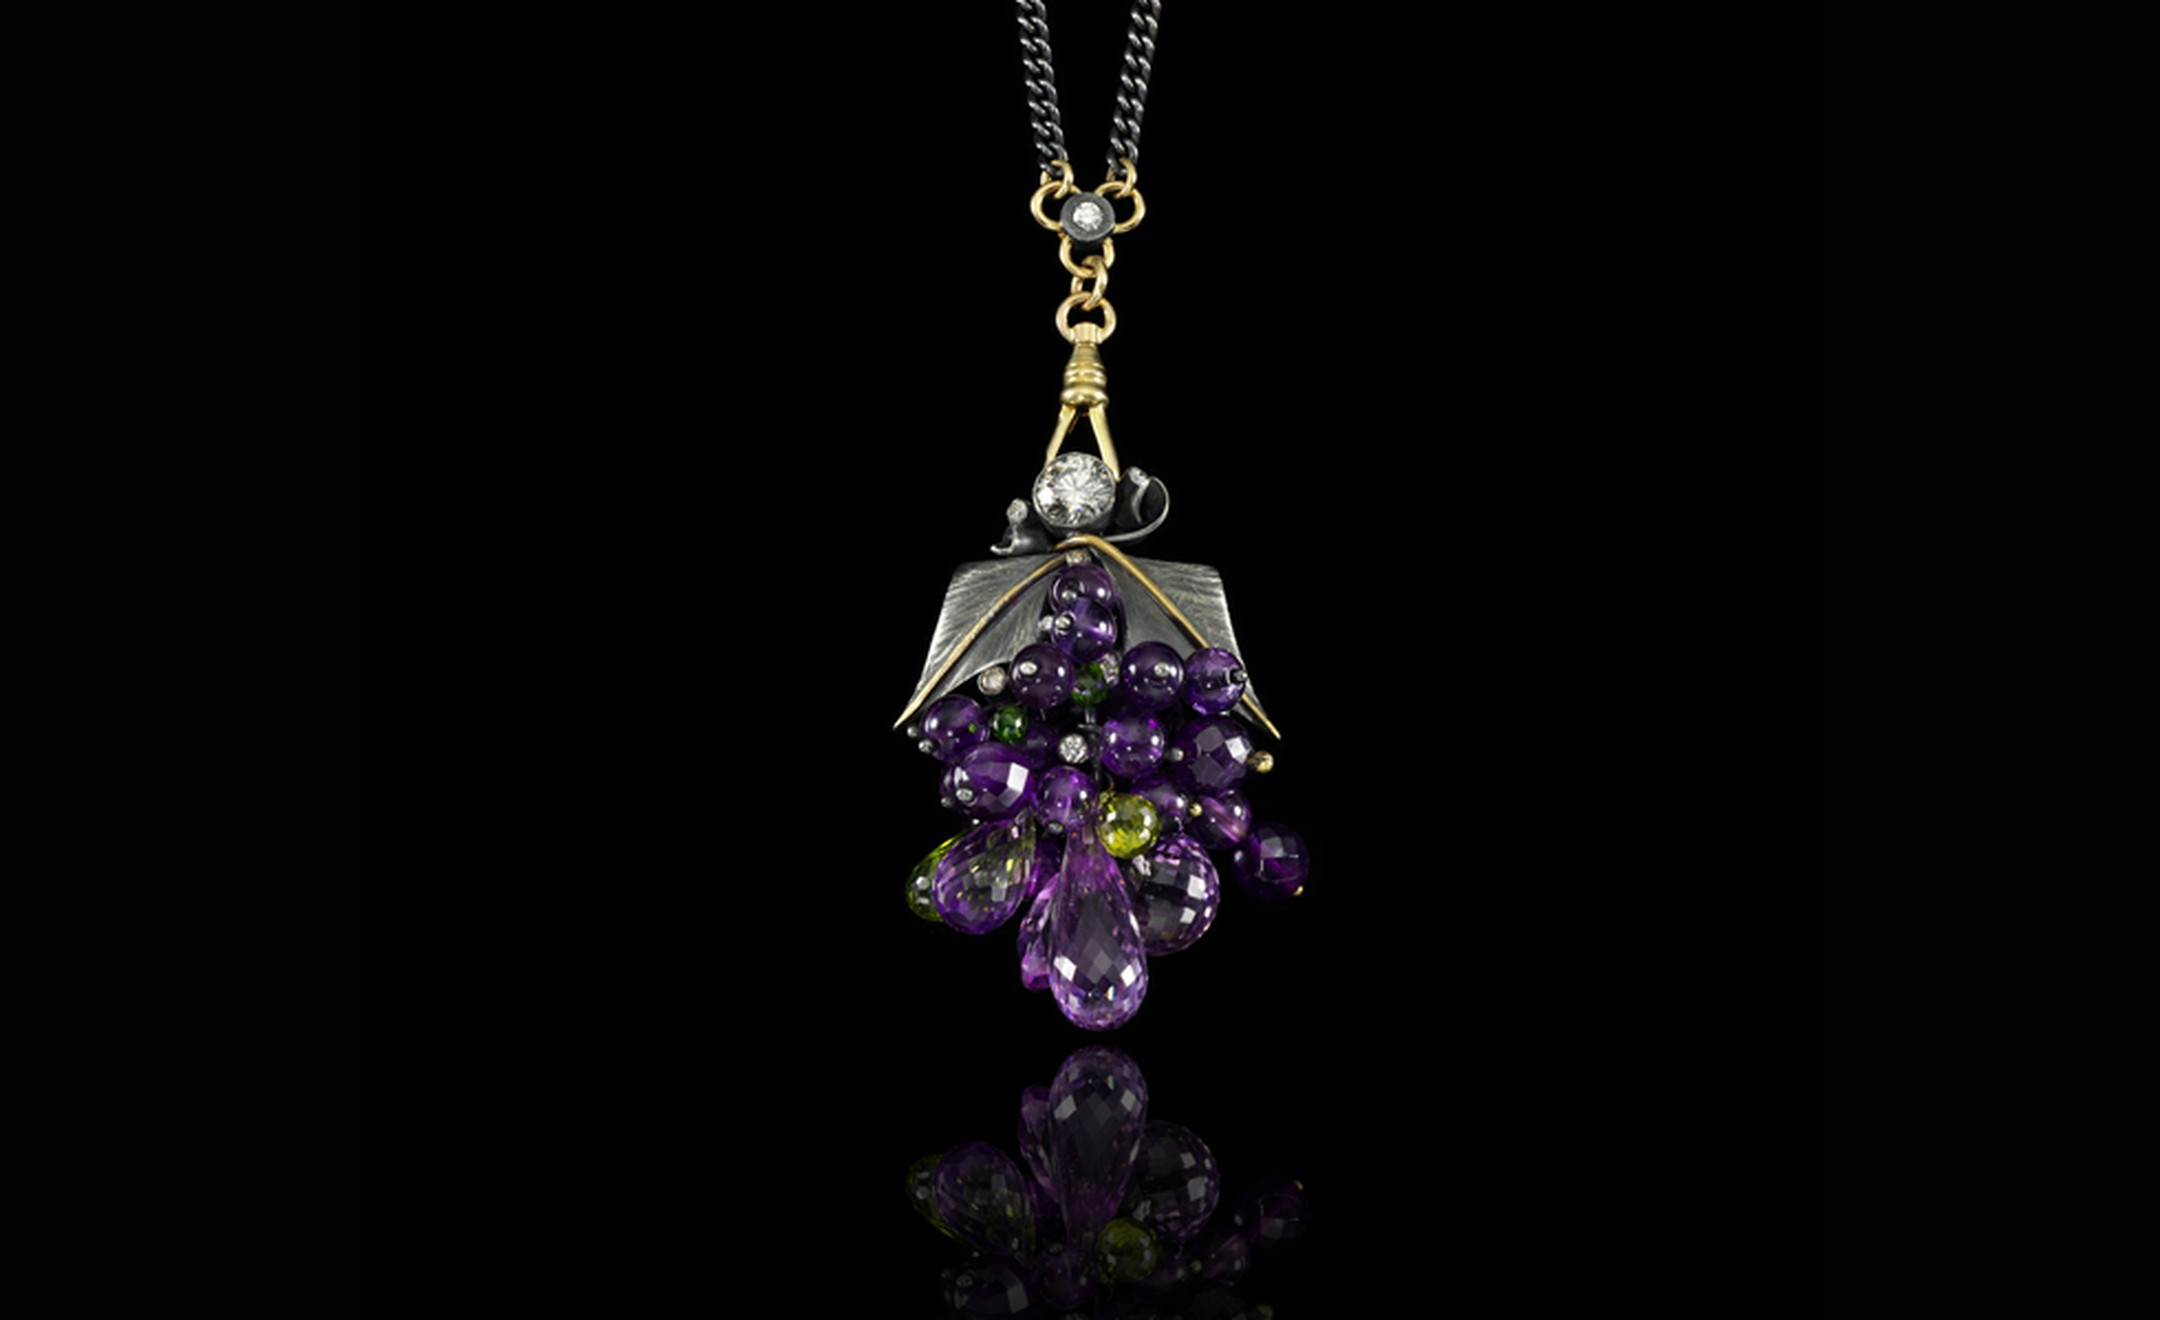 Jessica McCormack, 'Gluttony' gem-set, diamond, 18k yellow gold and silver pendent necklace, from the XIV collection. Designed as a cluster of facetted amethyst, period and chrome diopside, highlighted by brilliant-cut diamonds,   engraved silve...